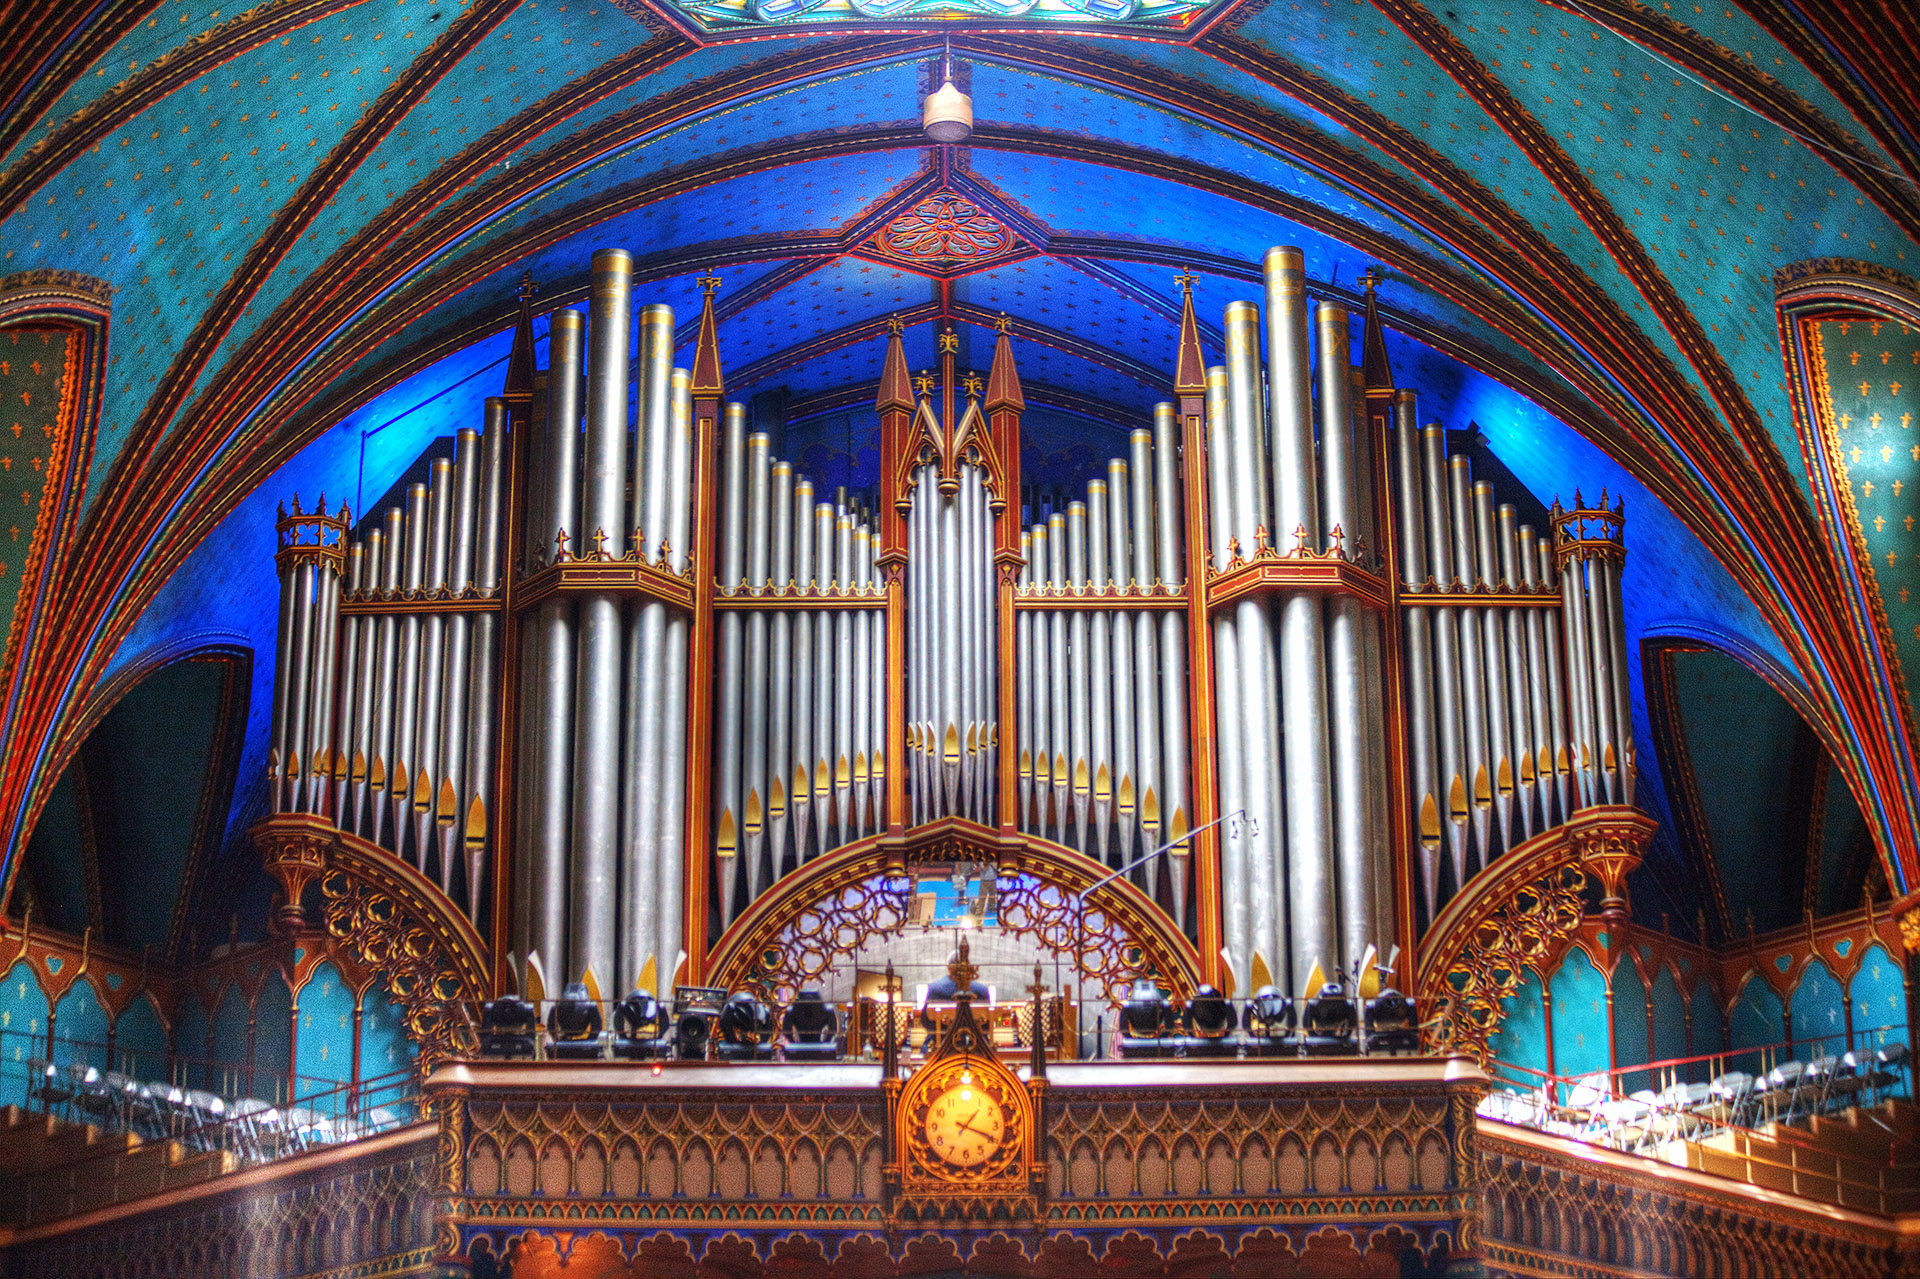 The pipe organ at the rear of the basilica containing 7,000 pipes.